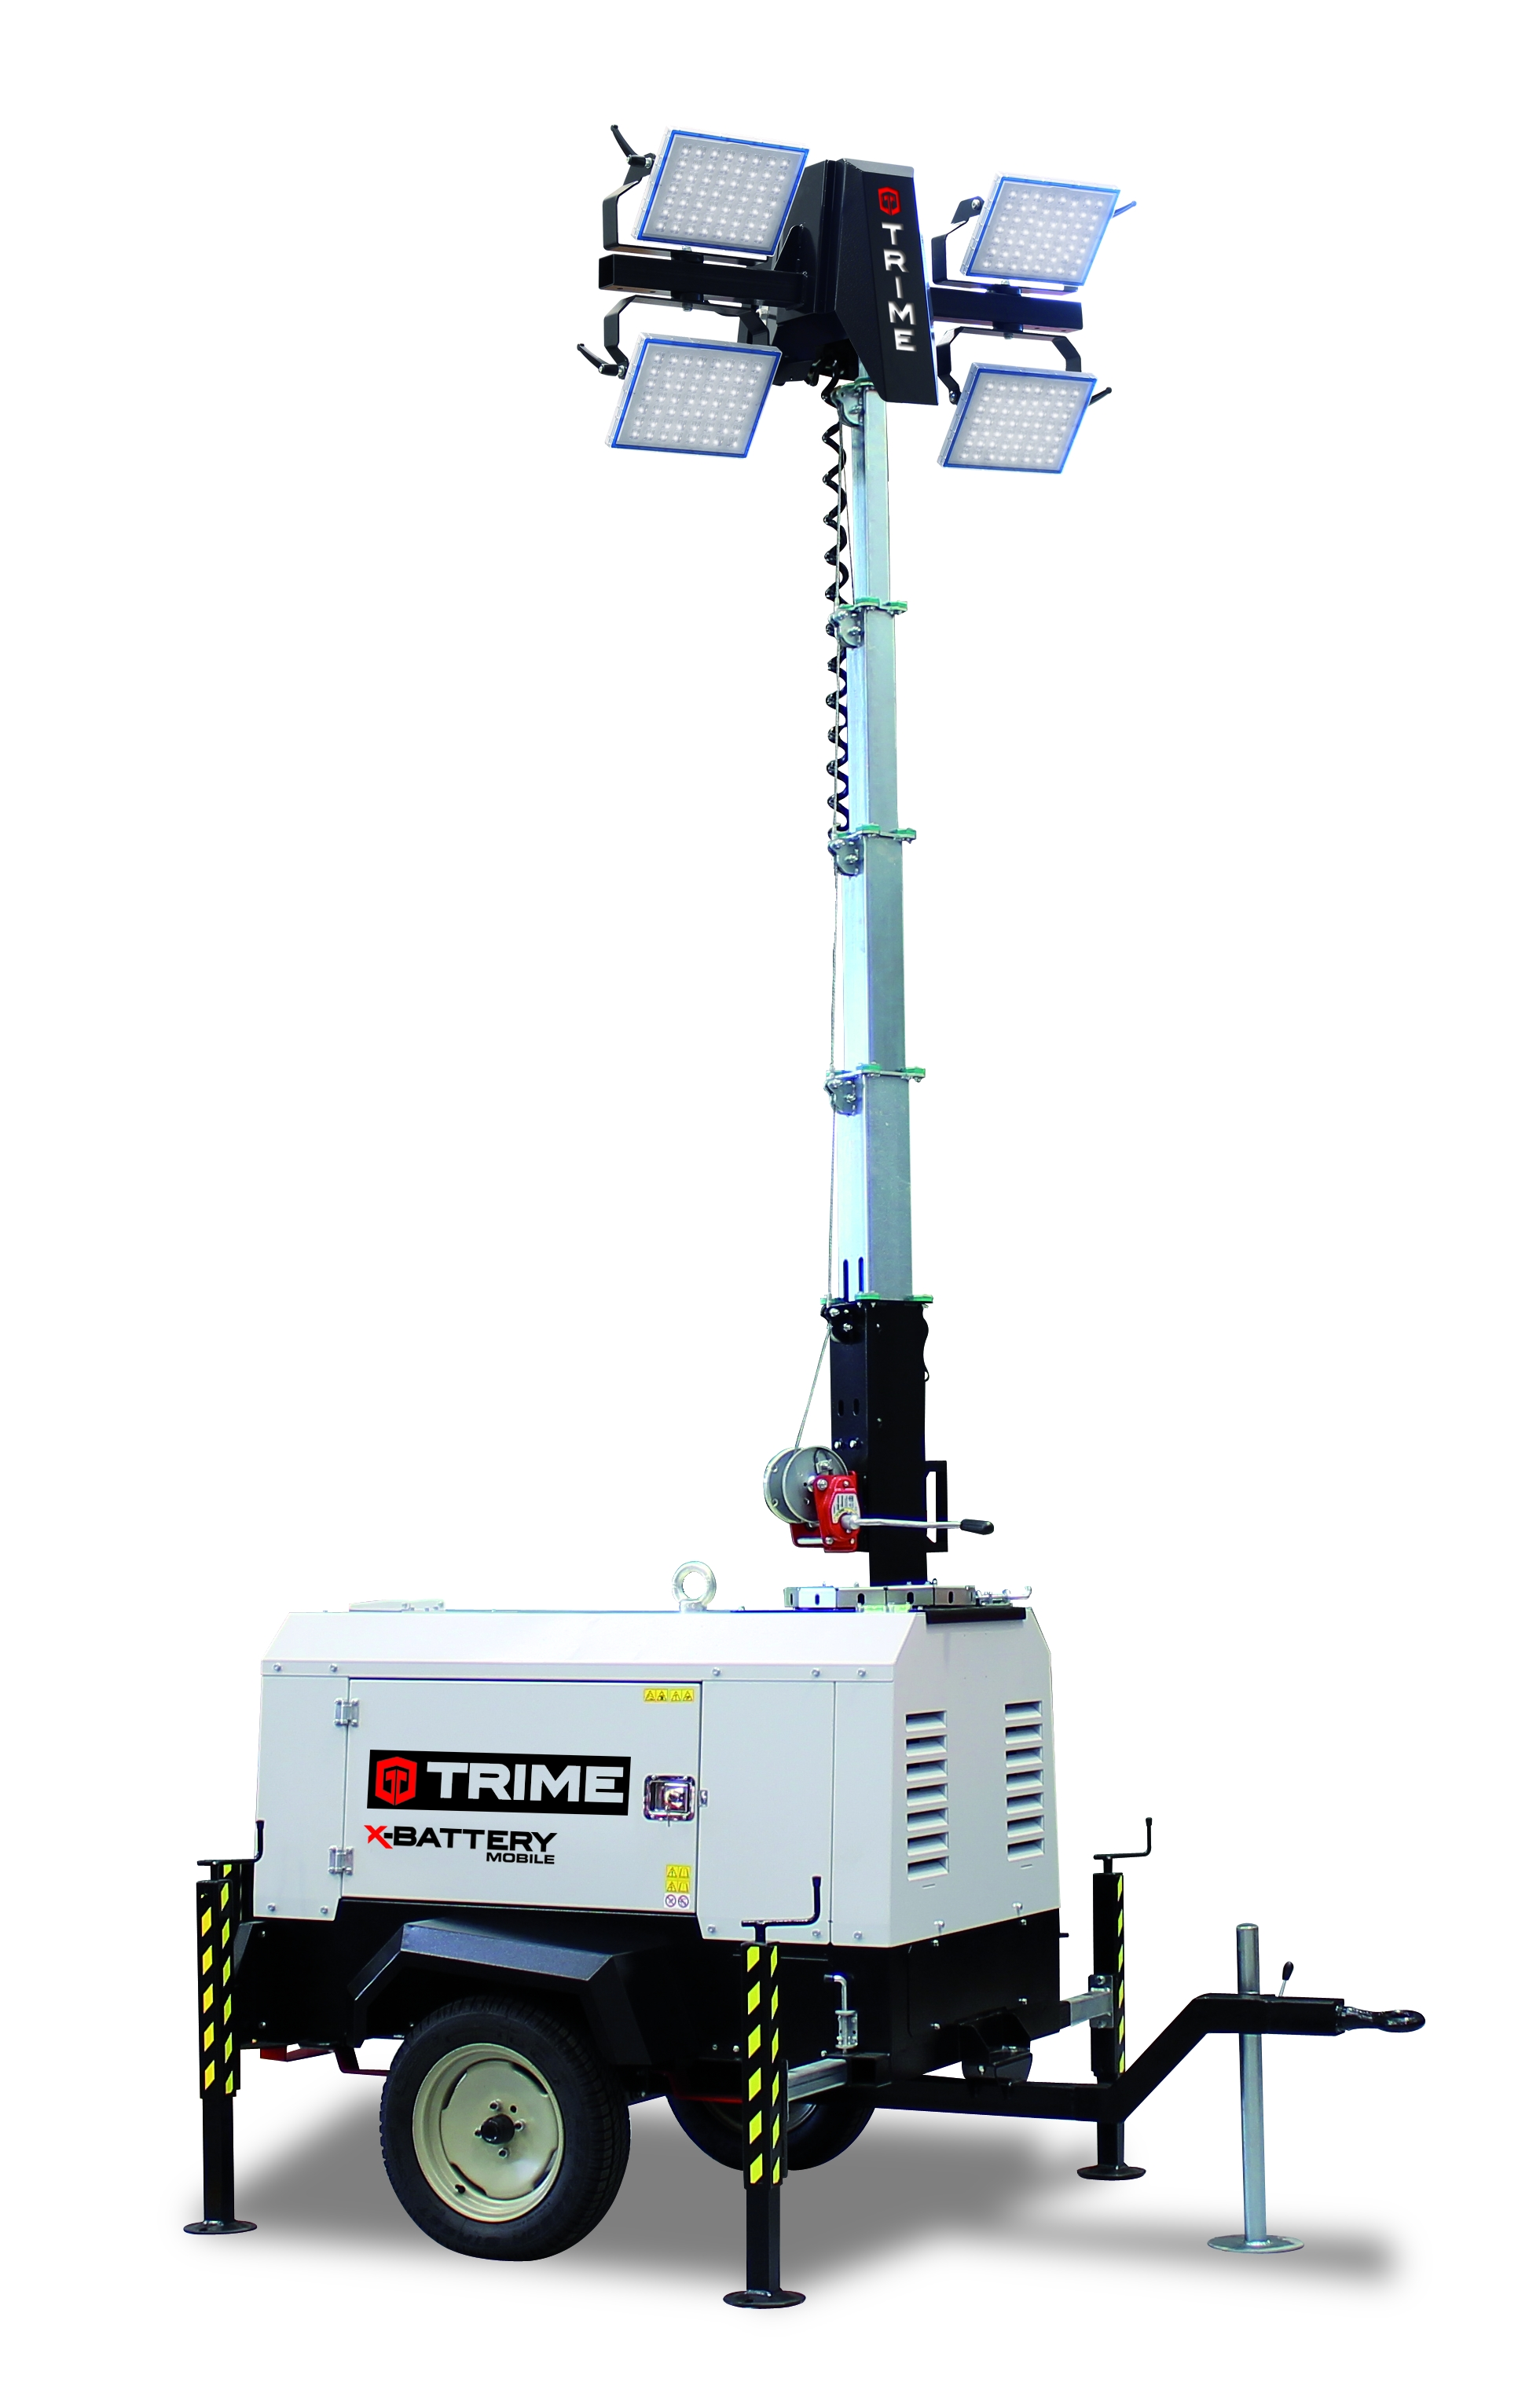 Accu Led Verlichting Trime X Battery Mobile